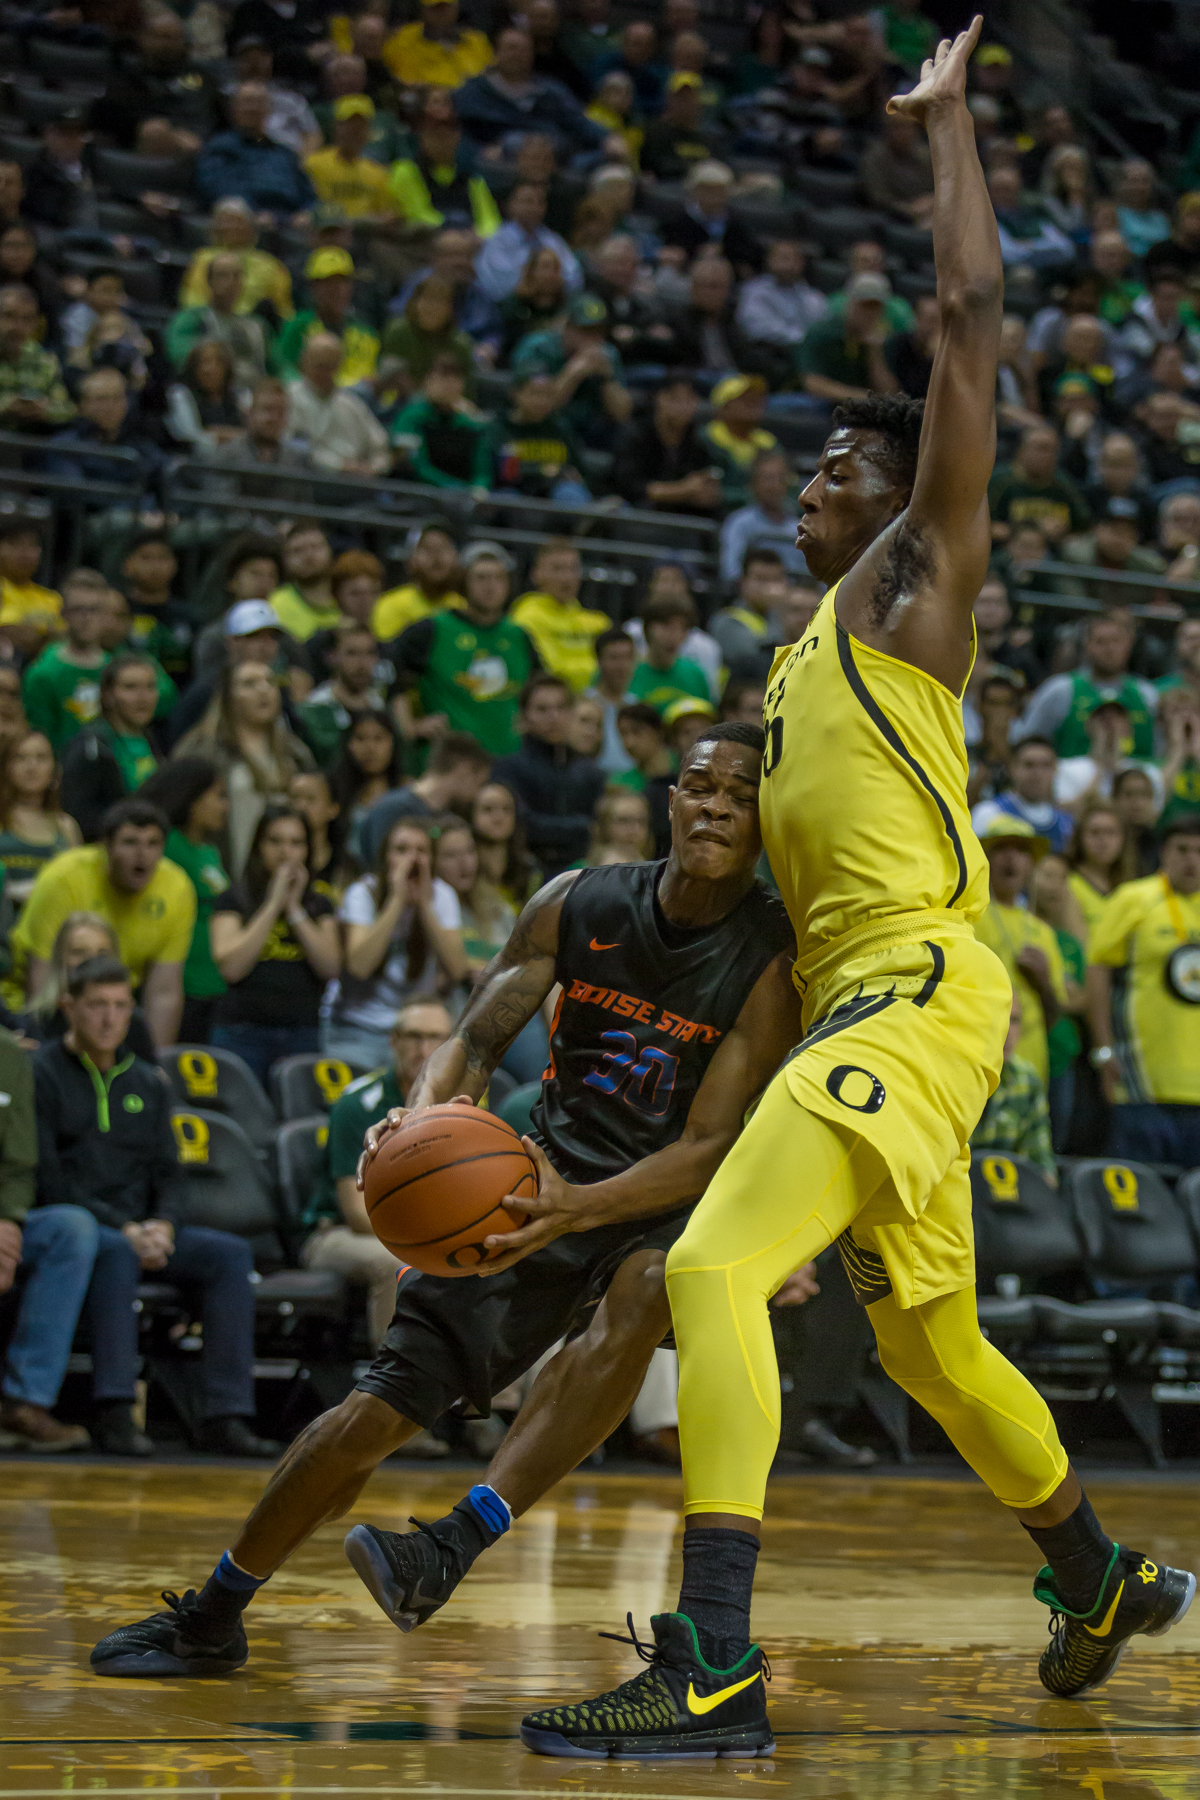 Boise State guard Paris Austin (#30) runs into Oregon forward Kavell Bigby-Williams (#35) on his way to the hoop. After trailing for most of the game, the Oregon Ducks defeated the Boise State Broncos 68-63. Photo by Dillon Vibes